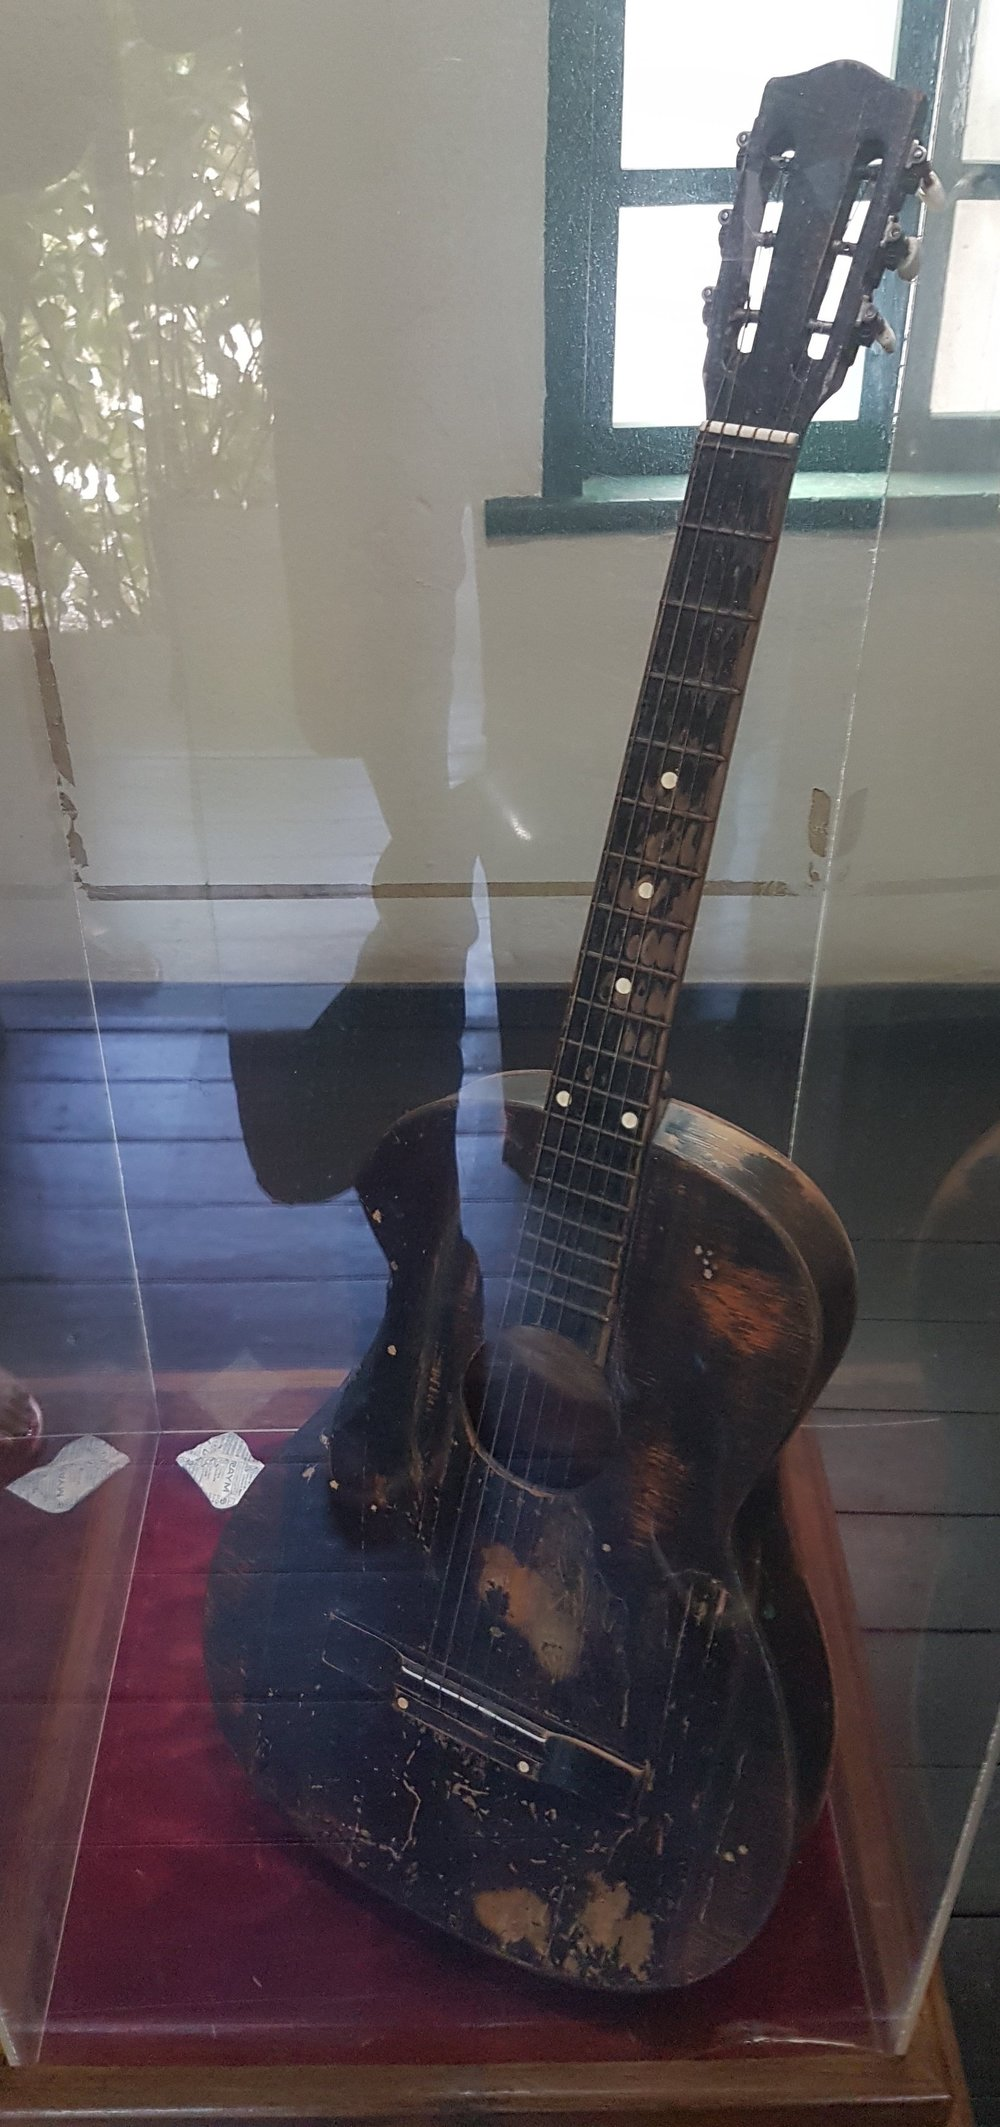 Bob Marley's first guitar on display at the Trenchtown Culture Yard Museum